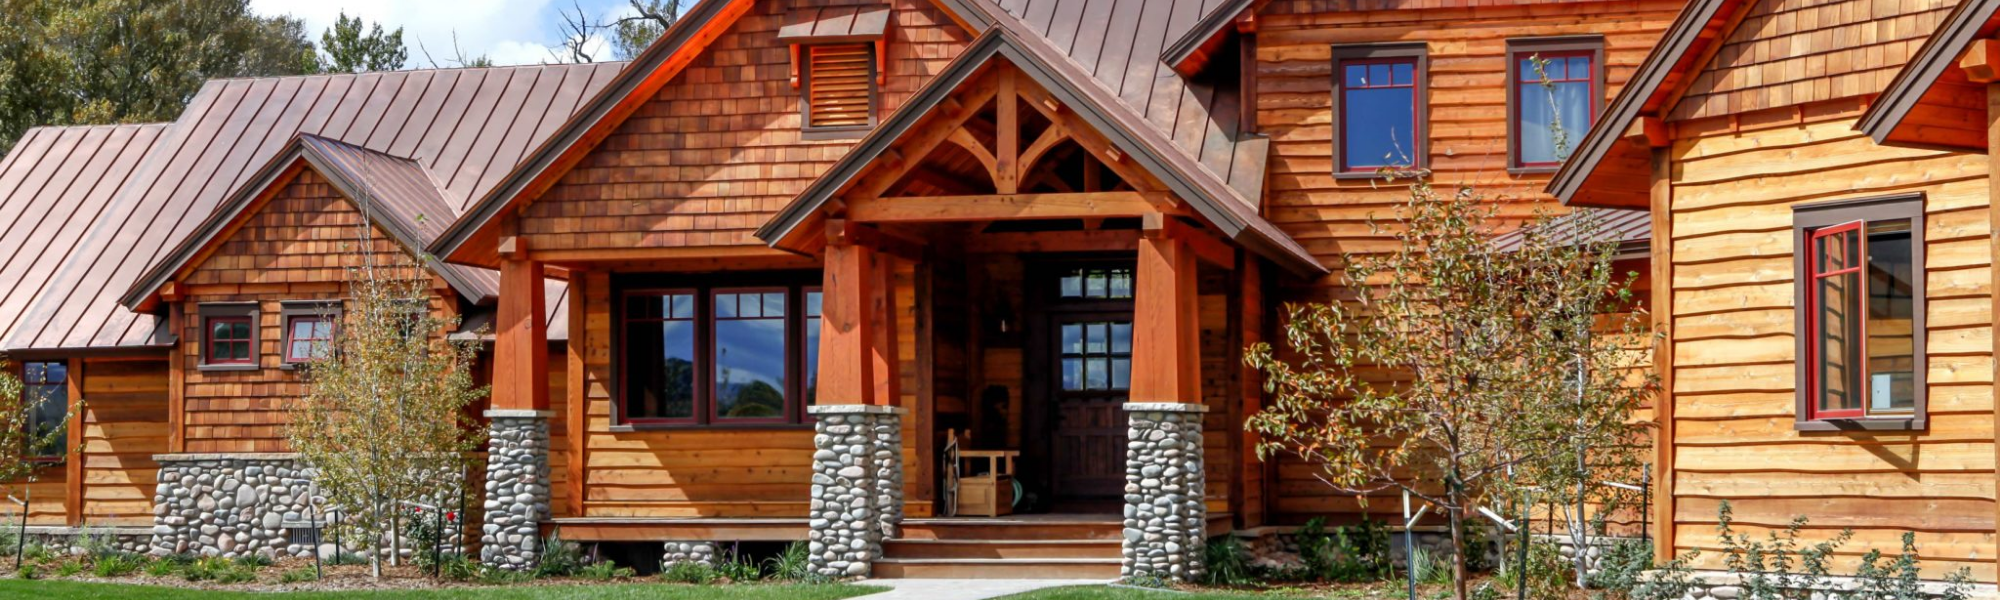 Timber Frame Questions? We Have Answers!